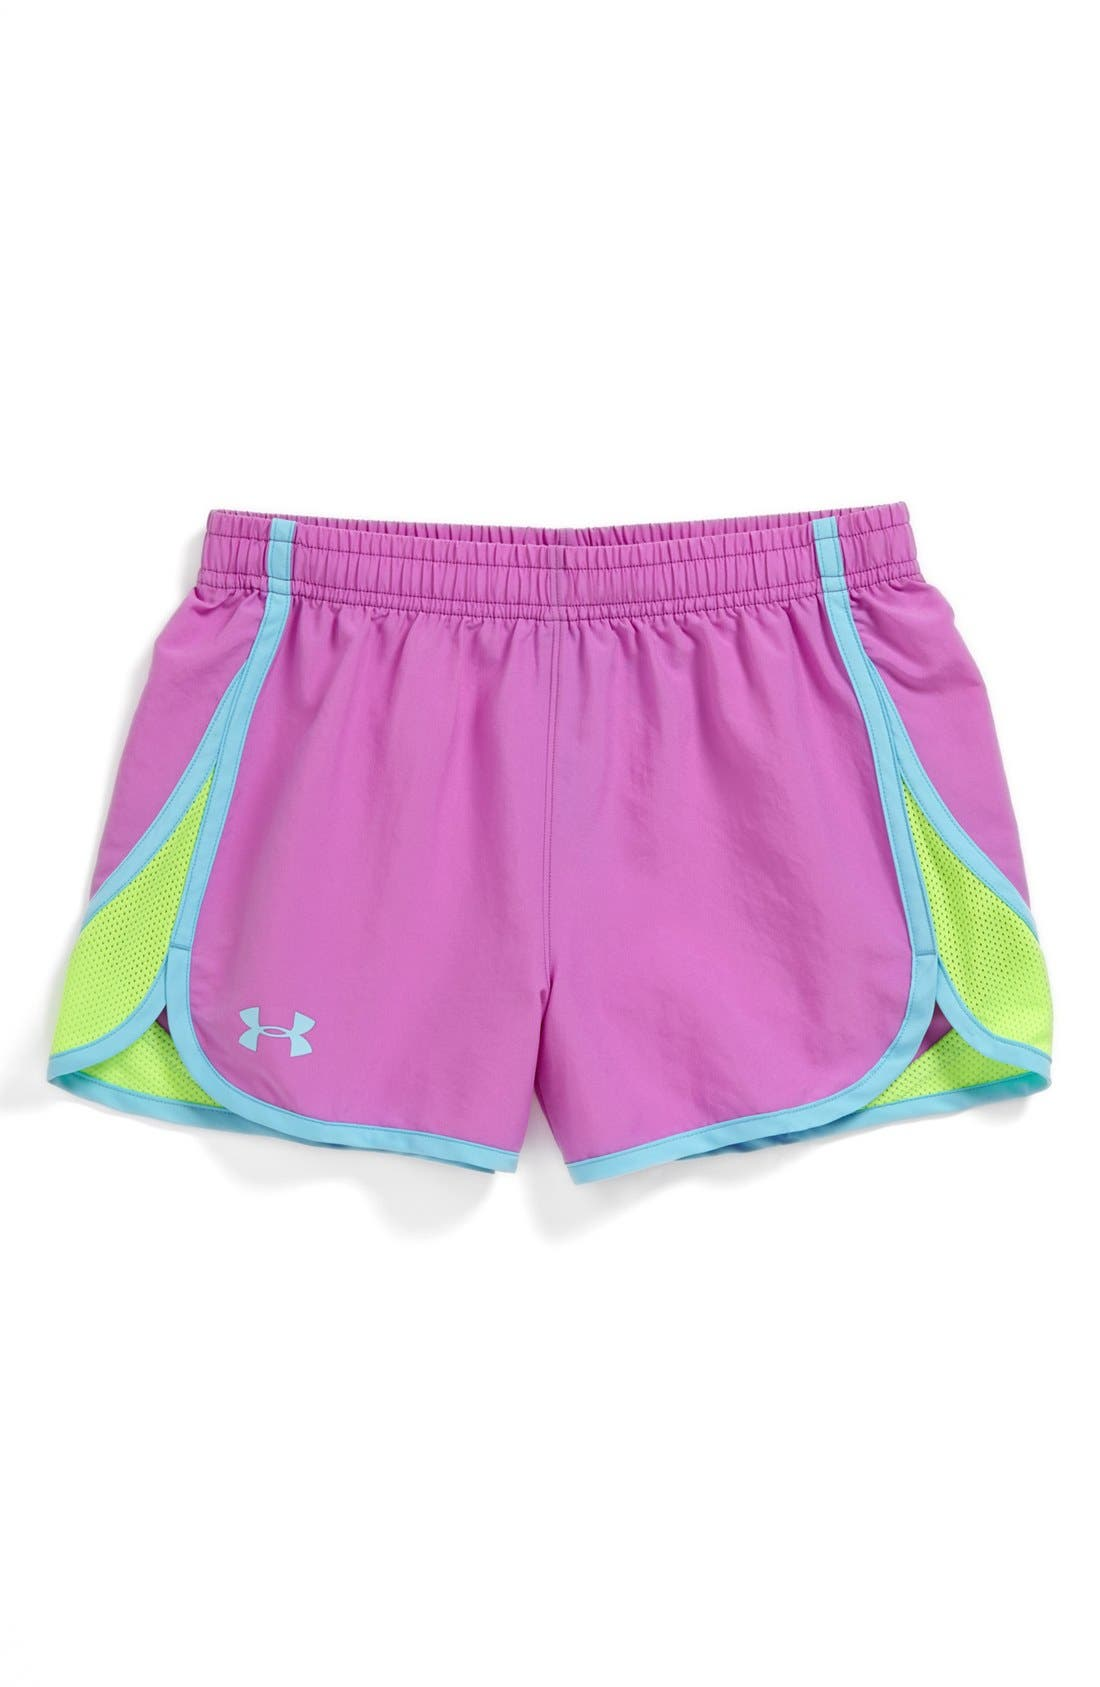 Alternate Image 1 Selected - Under Armour 'Escape In' Shorts (Big Girls)